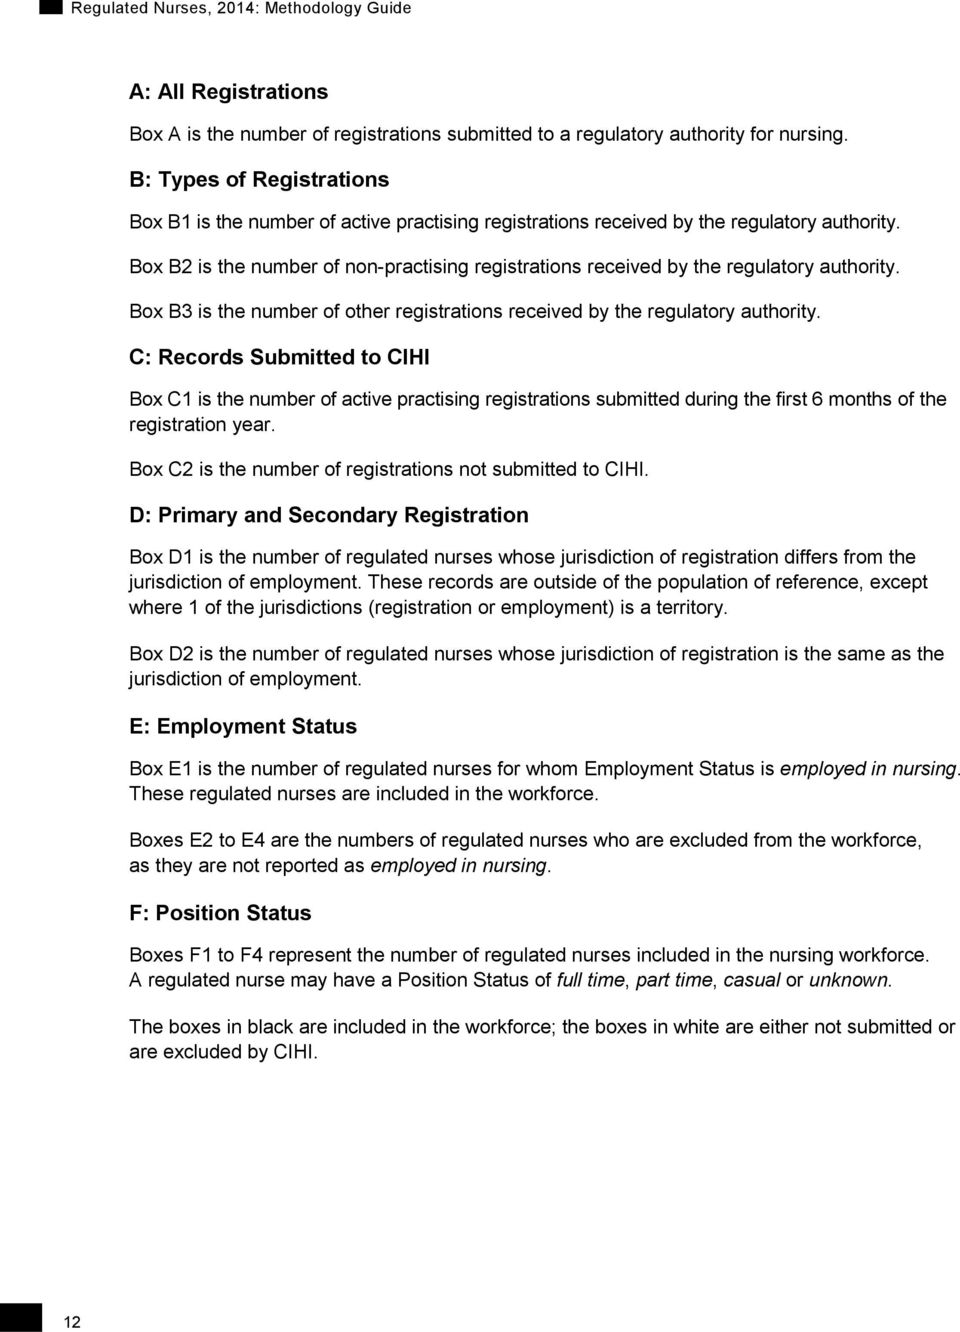 Box B2 is the number of non-practising registrations received by the regulatory authority. Box B3 is the number of other registrations received by the regulatory authority.